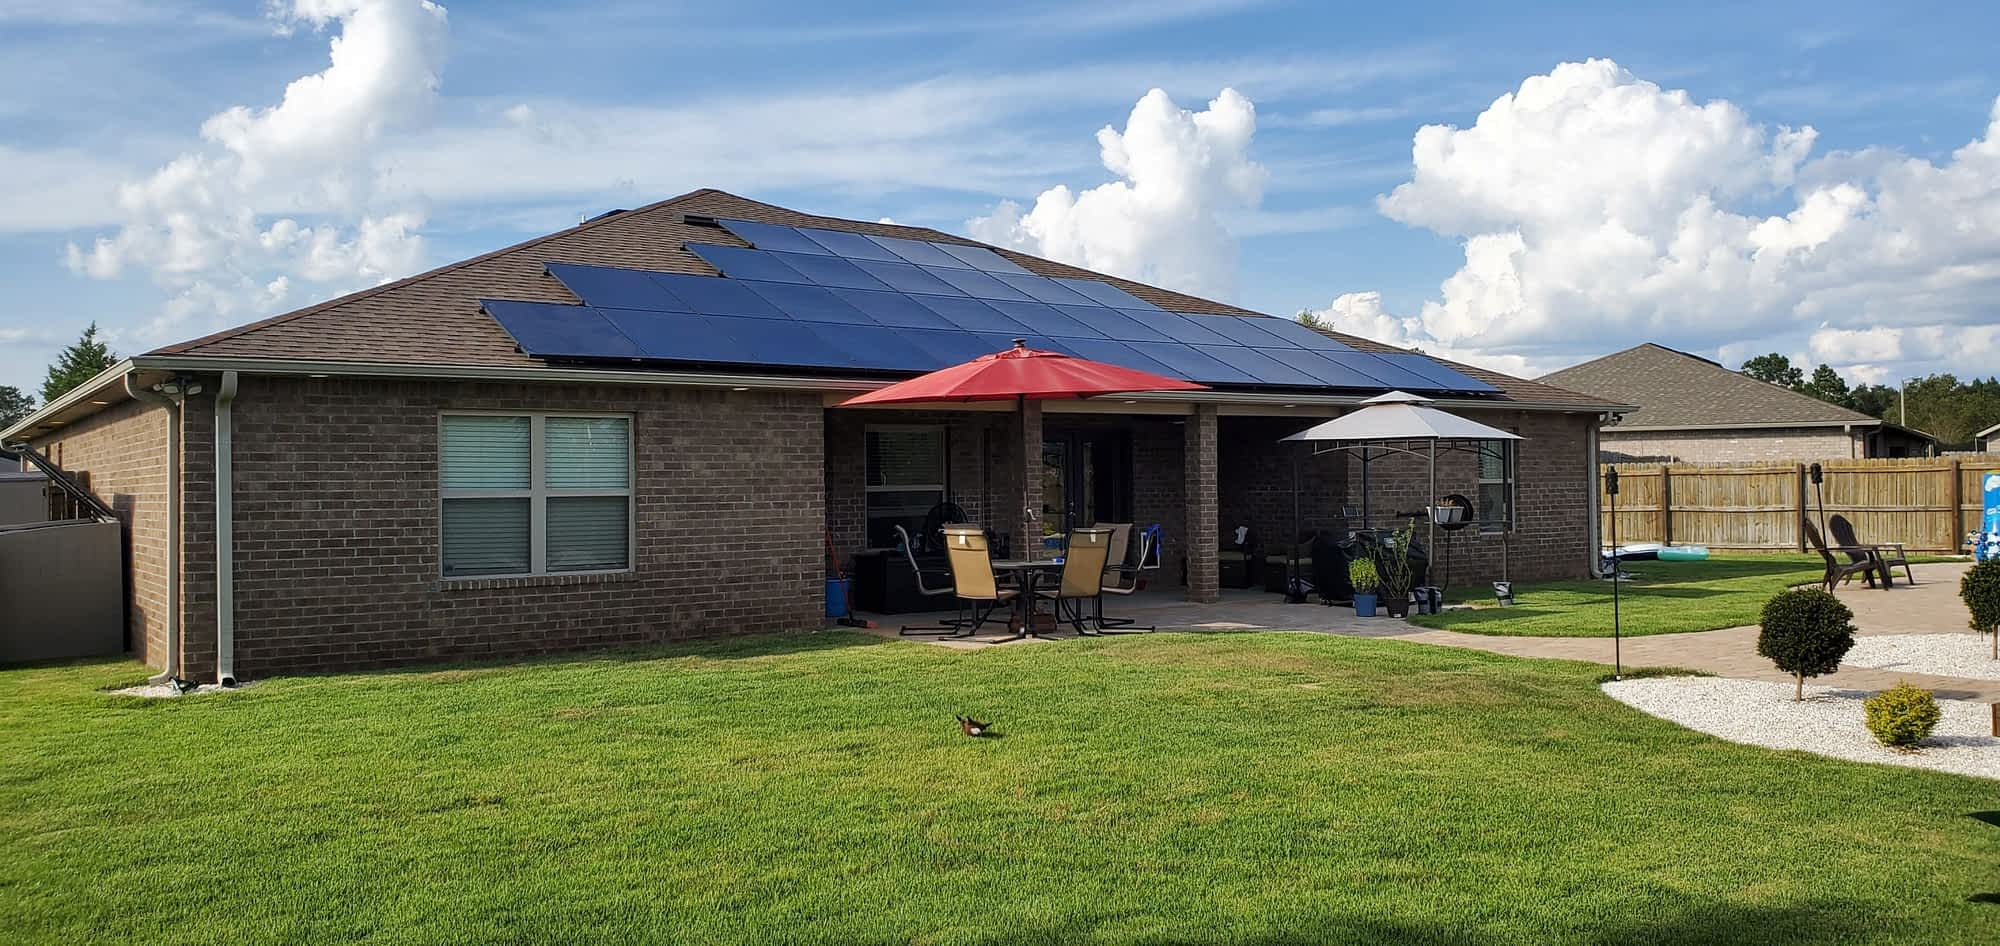 Compass solar panels in pensacola fl